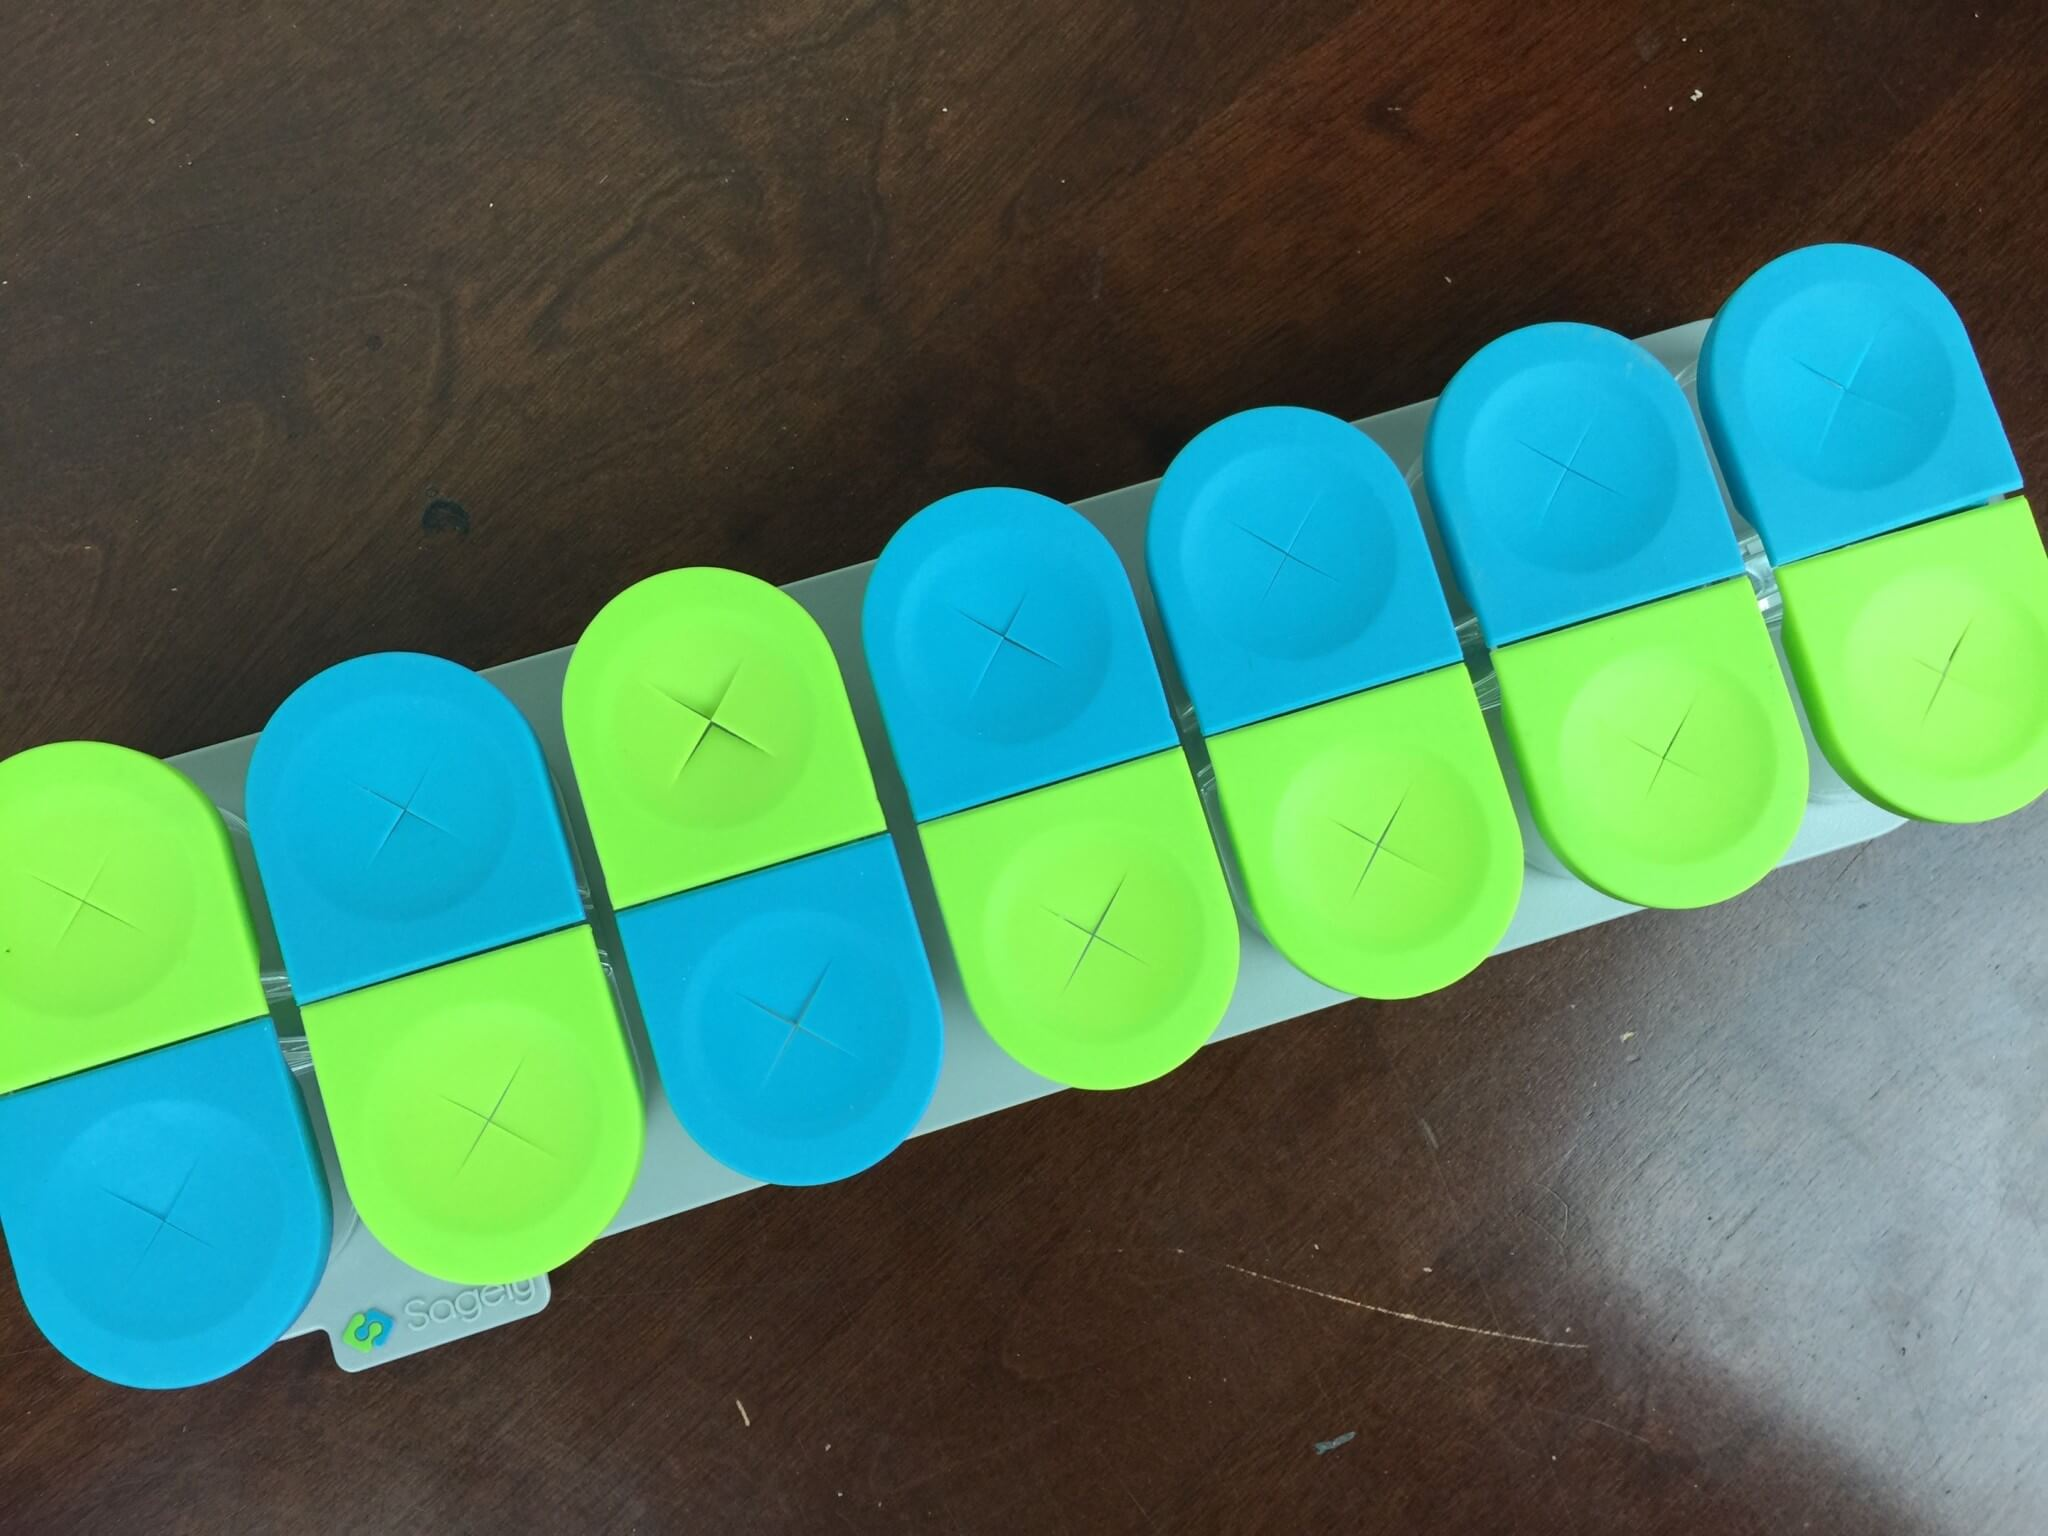 Organizer 2016 Sagely Pill Organizer Review The Grail Of Vitamin Prescription